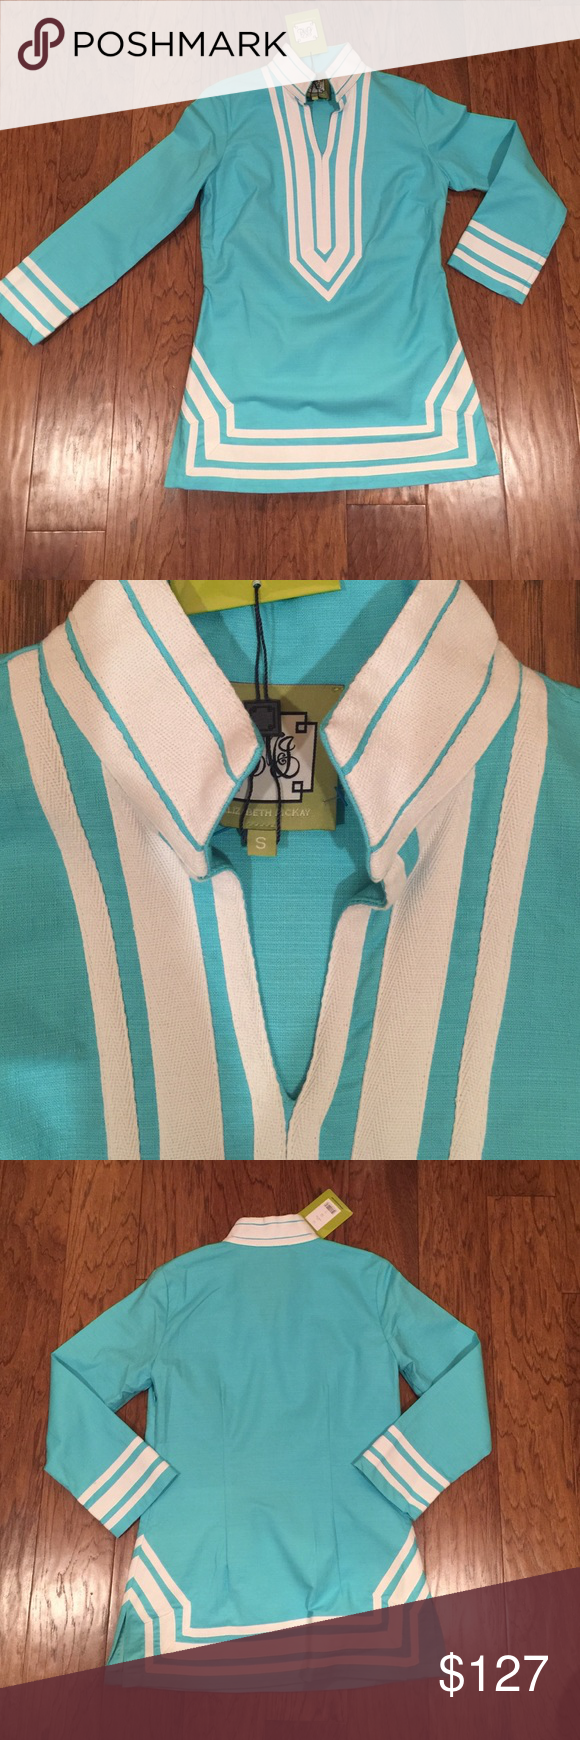 NWT ELIZABETH MCKAY TUNIC TOP Brand new with tags in stores now Elizabeth McKay Turquoise tunic top blouse style 4310 classic tunic S, with side zipper.  This is heavy duty fabric and looks tailored when worn. Elizabeth Mckay Tops Tunics